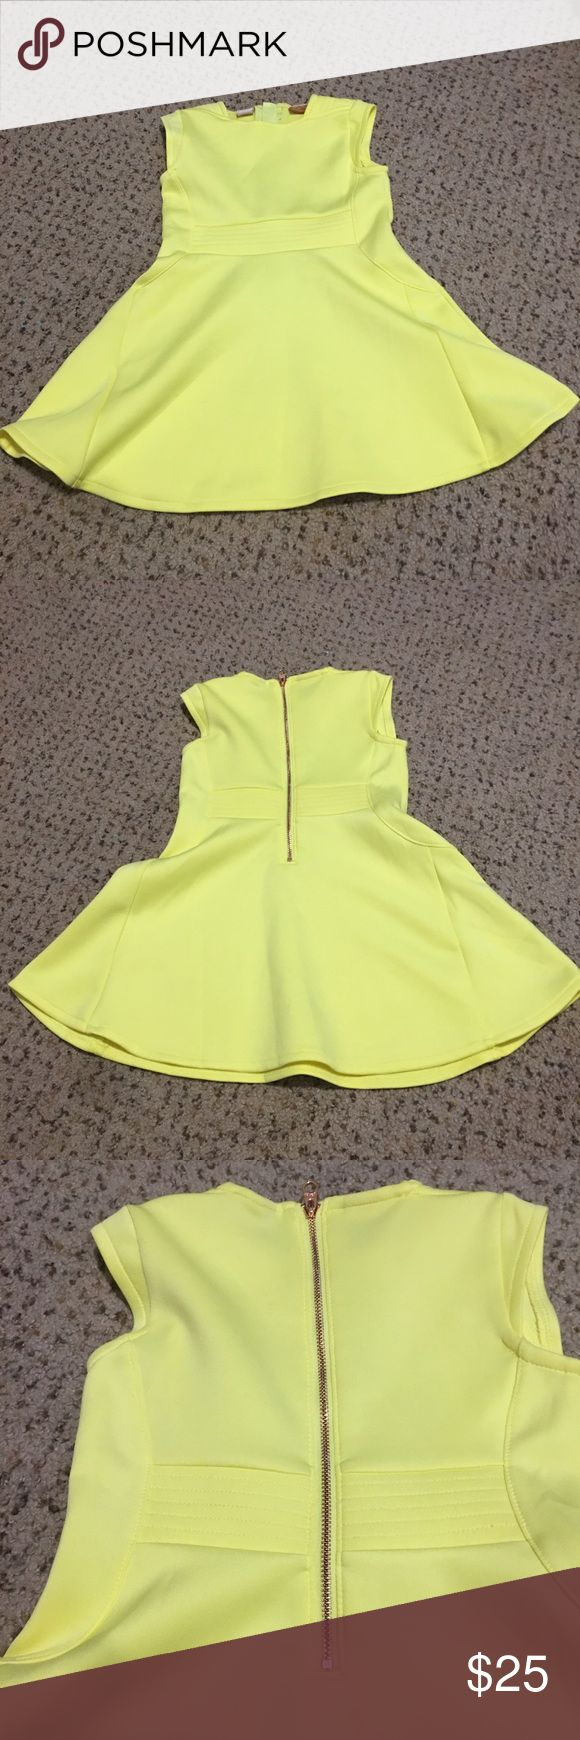 baker By Ted Baker - Size 2Y - EUC baker By Ted Baker - Size 2Y - EUC. Worn for pictures. No stains or wear and tear. Baker by Ted Baker Dresses Formal